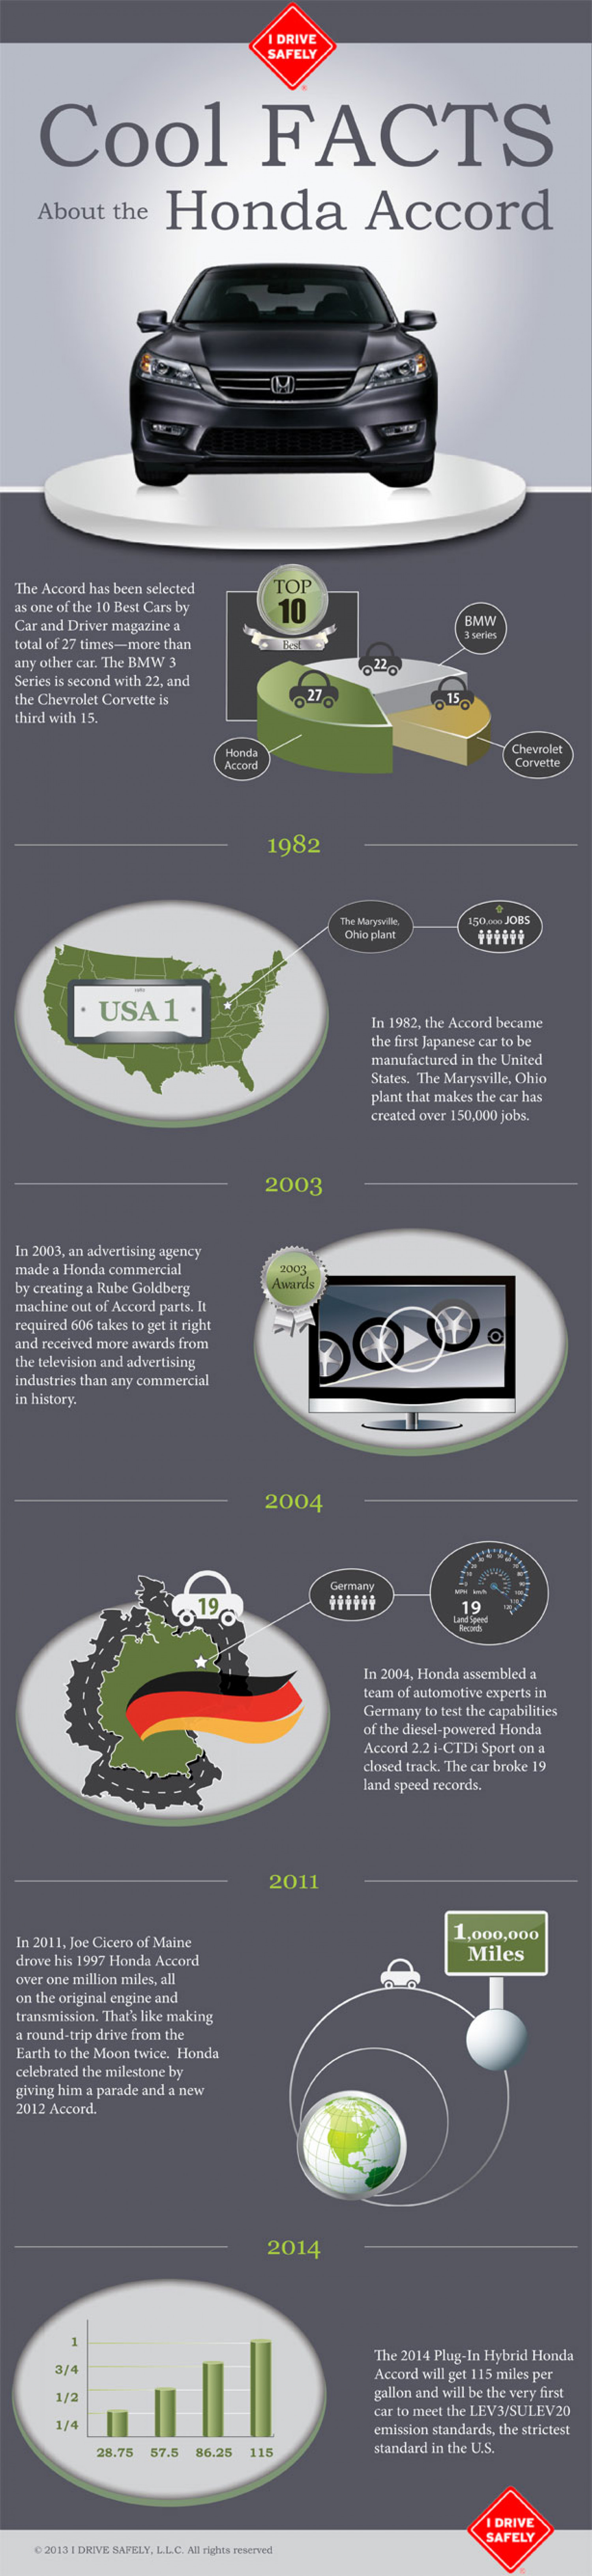 Cool Facts About the Honda Accord Infographic